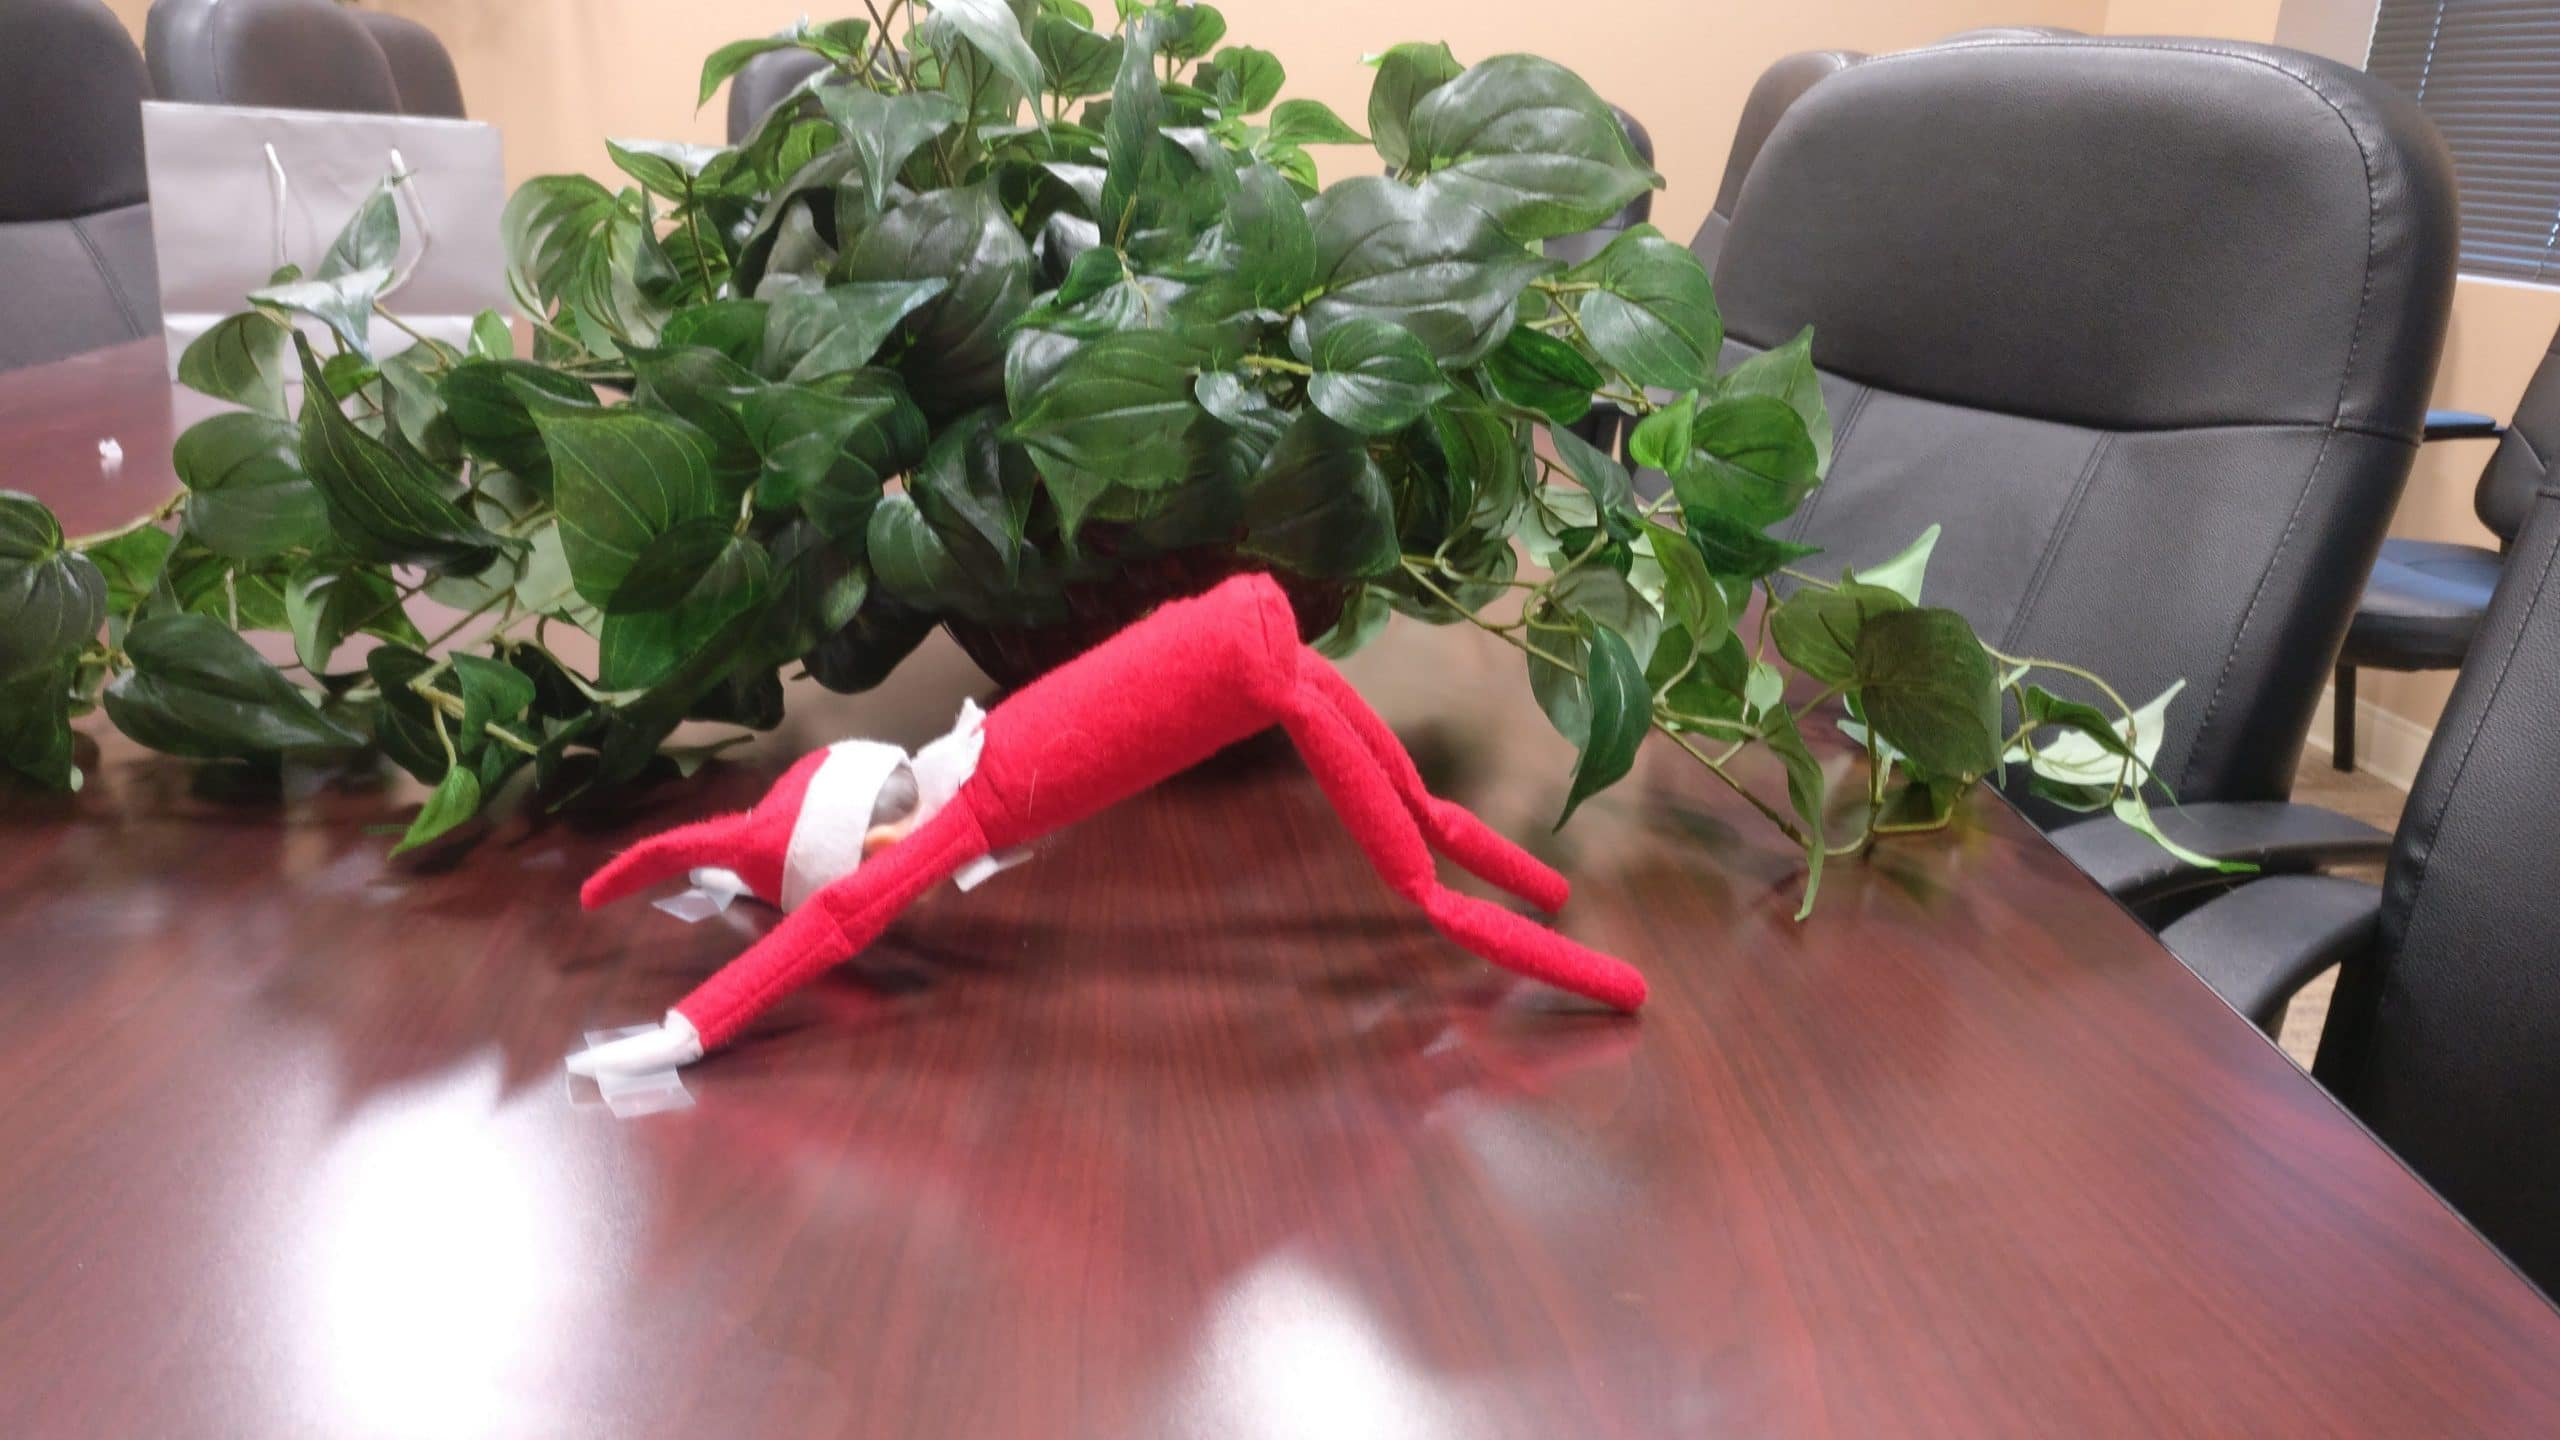 Elf on the shelf doing a downward dog pose.